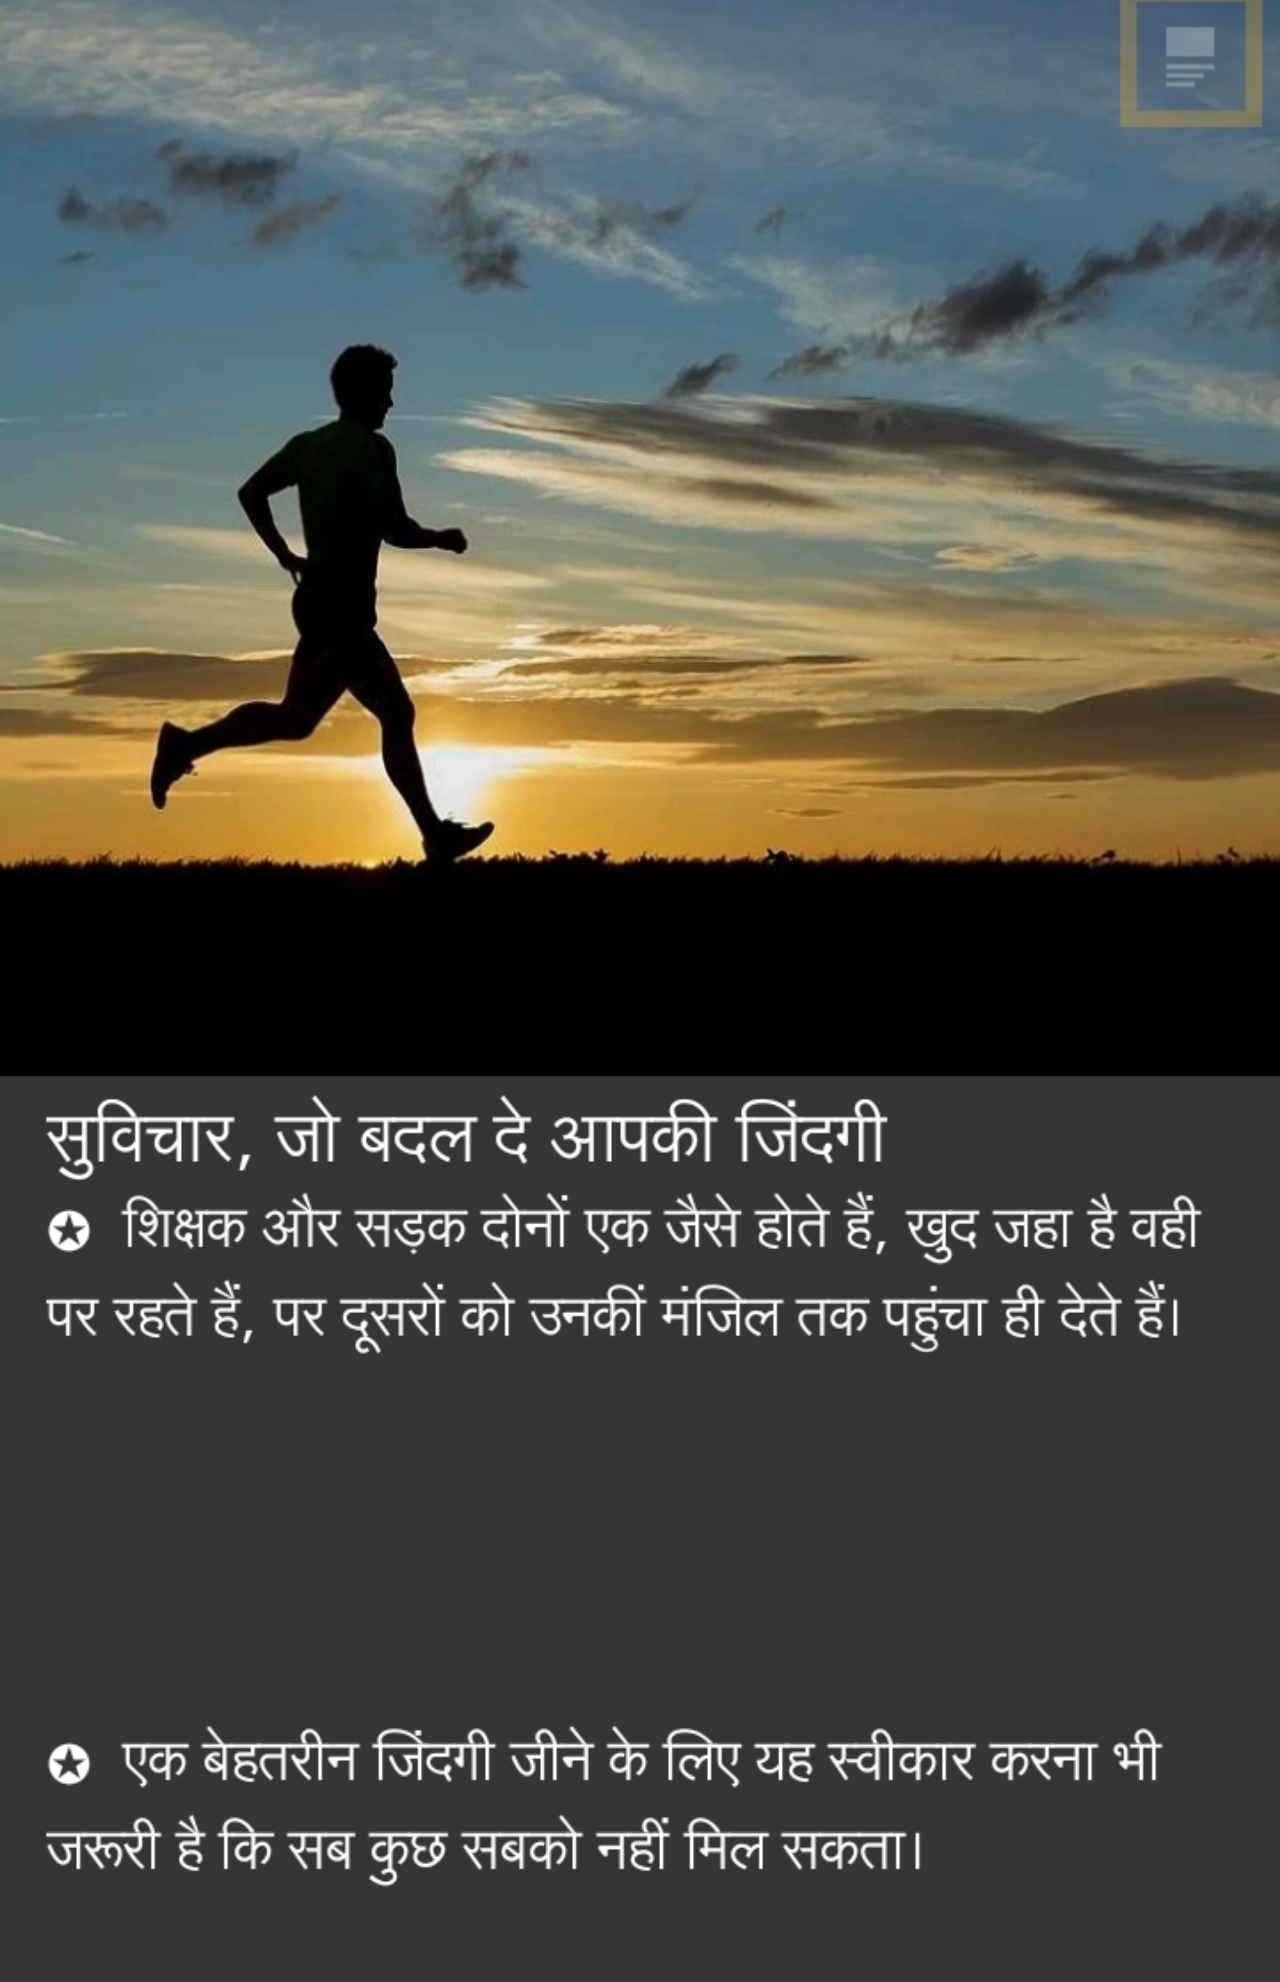 Pin by Mohd.arashad on Motivational Quotes   Hindi quotes ...